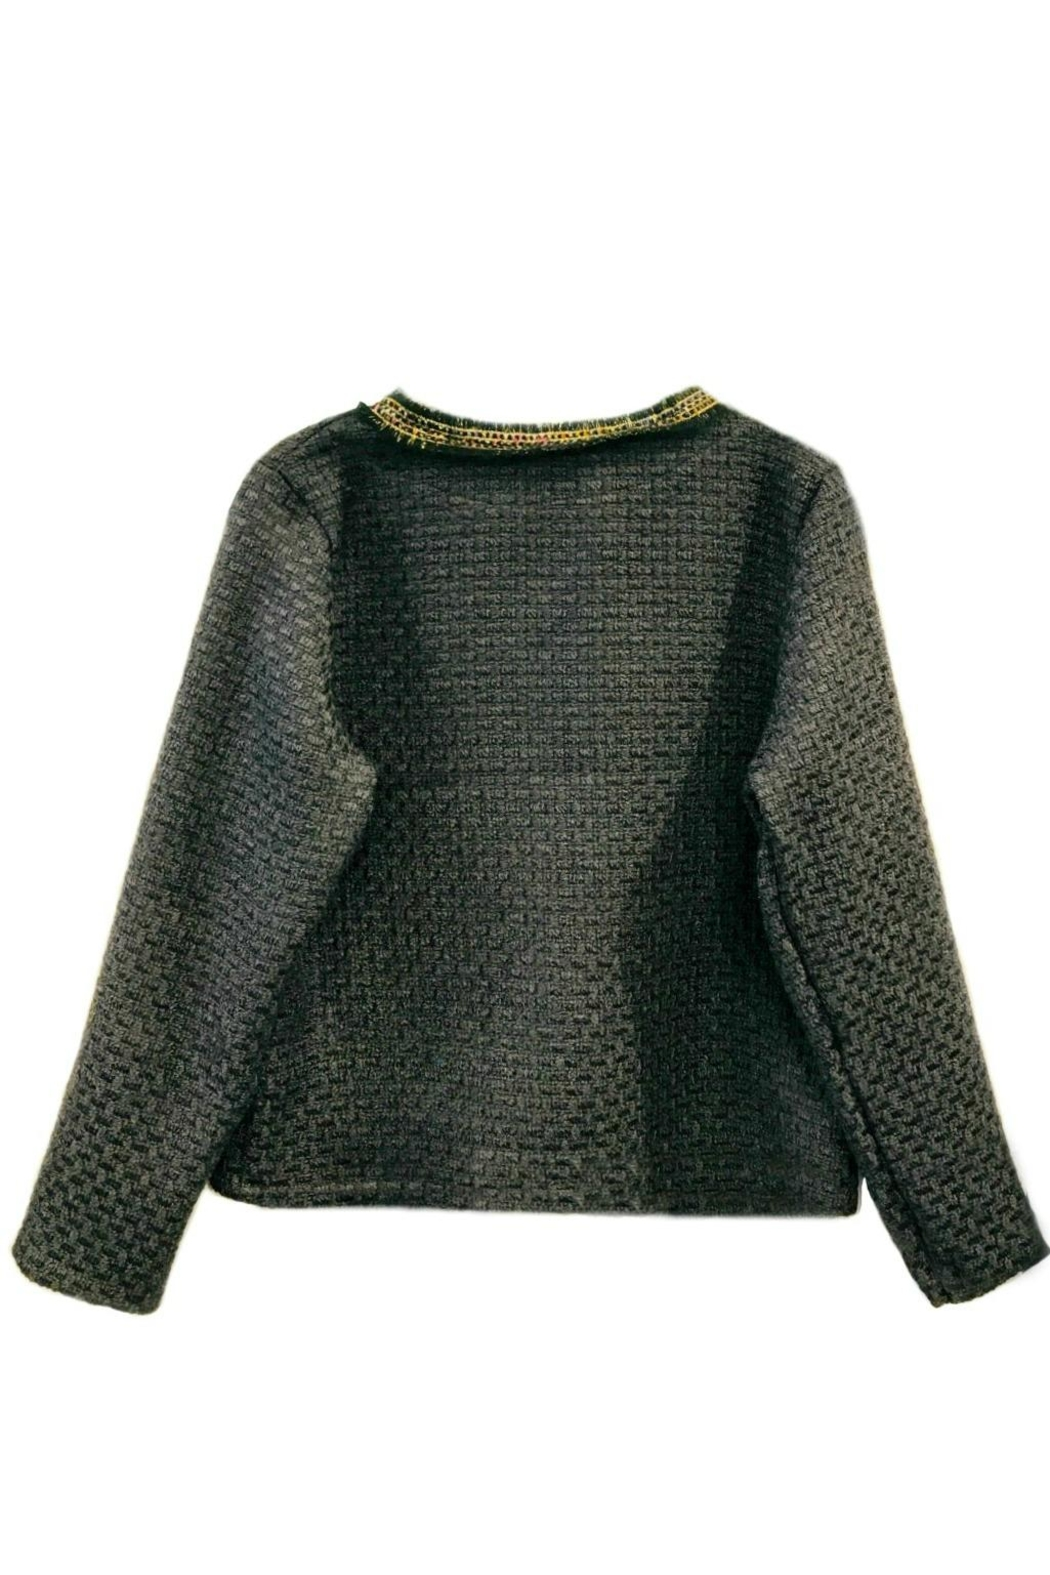 ANTONELLO SERIO Crop Tweed Blazer - Front Full Image